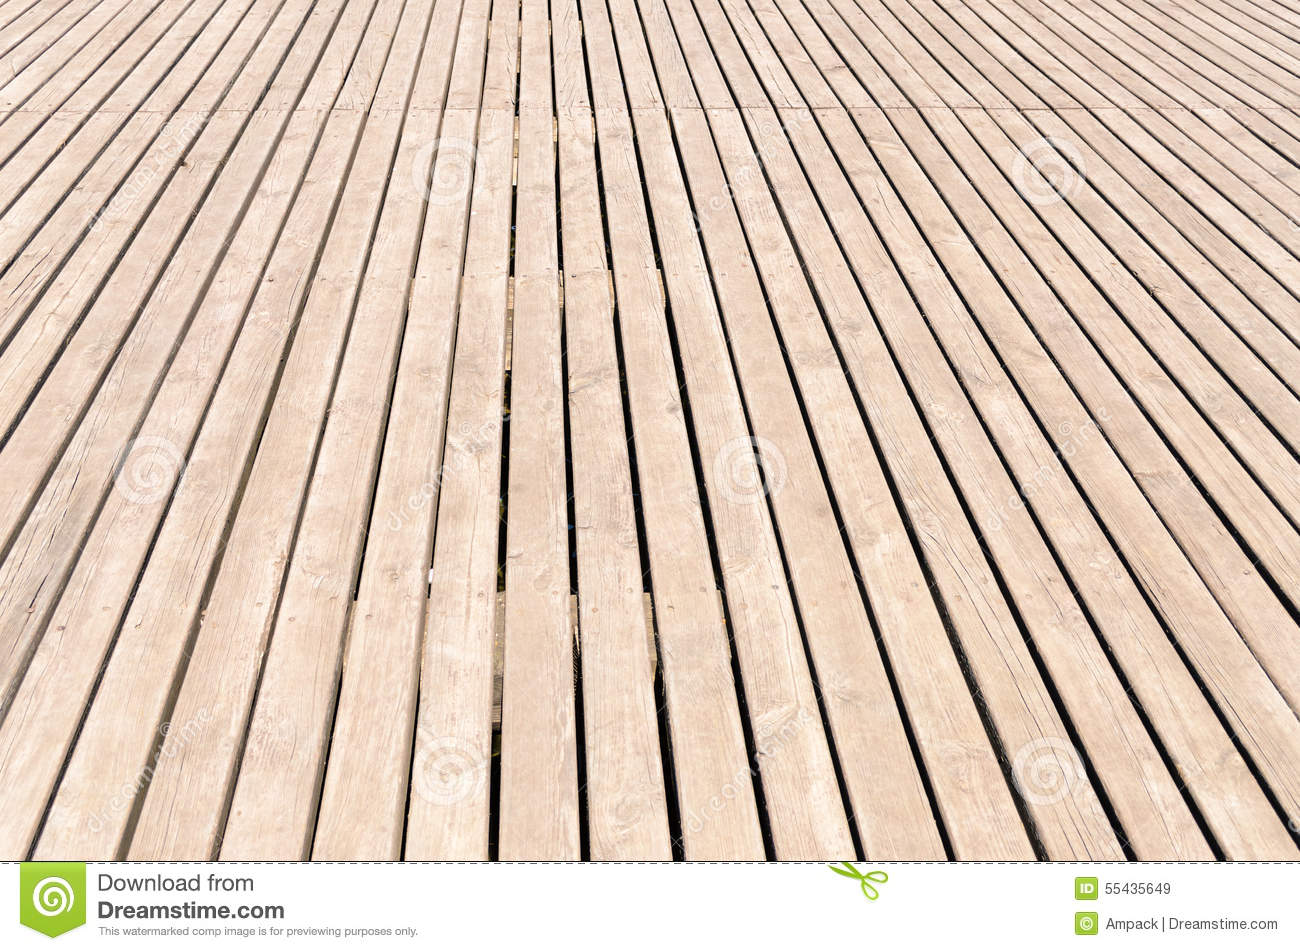 Background Texture Of Wooden Decking Stock Image - Image of slats ...